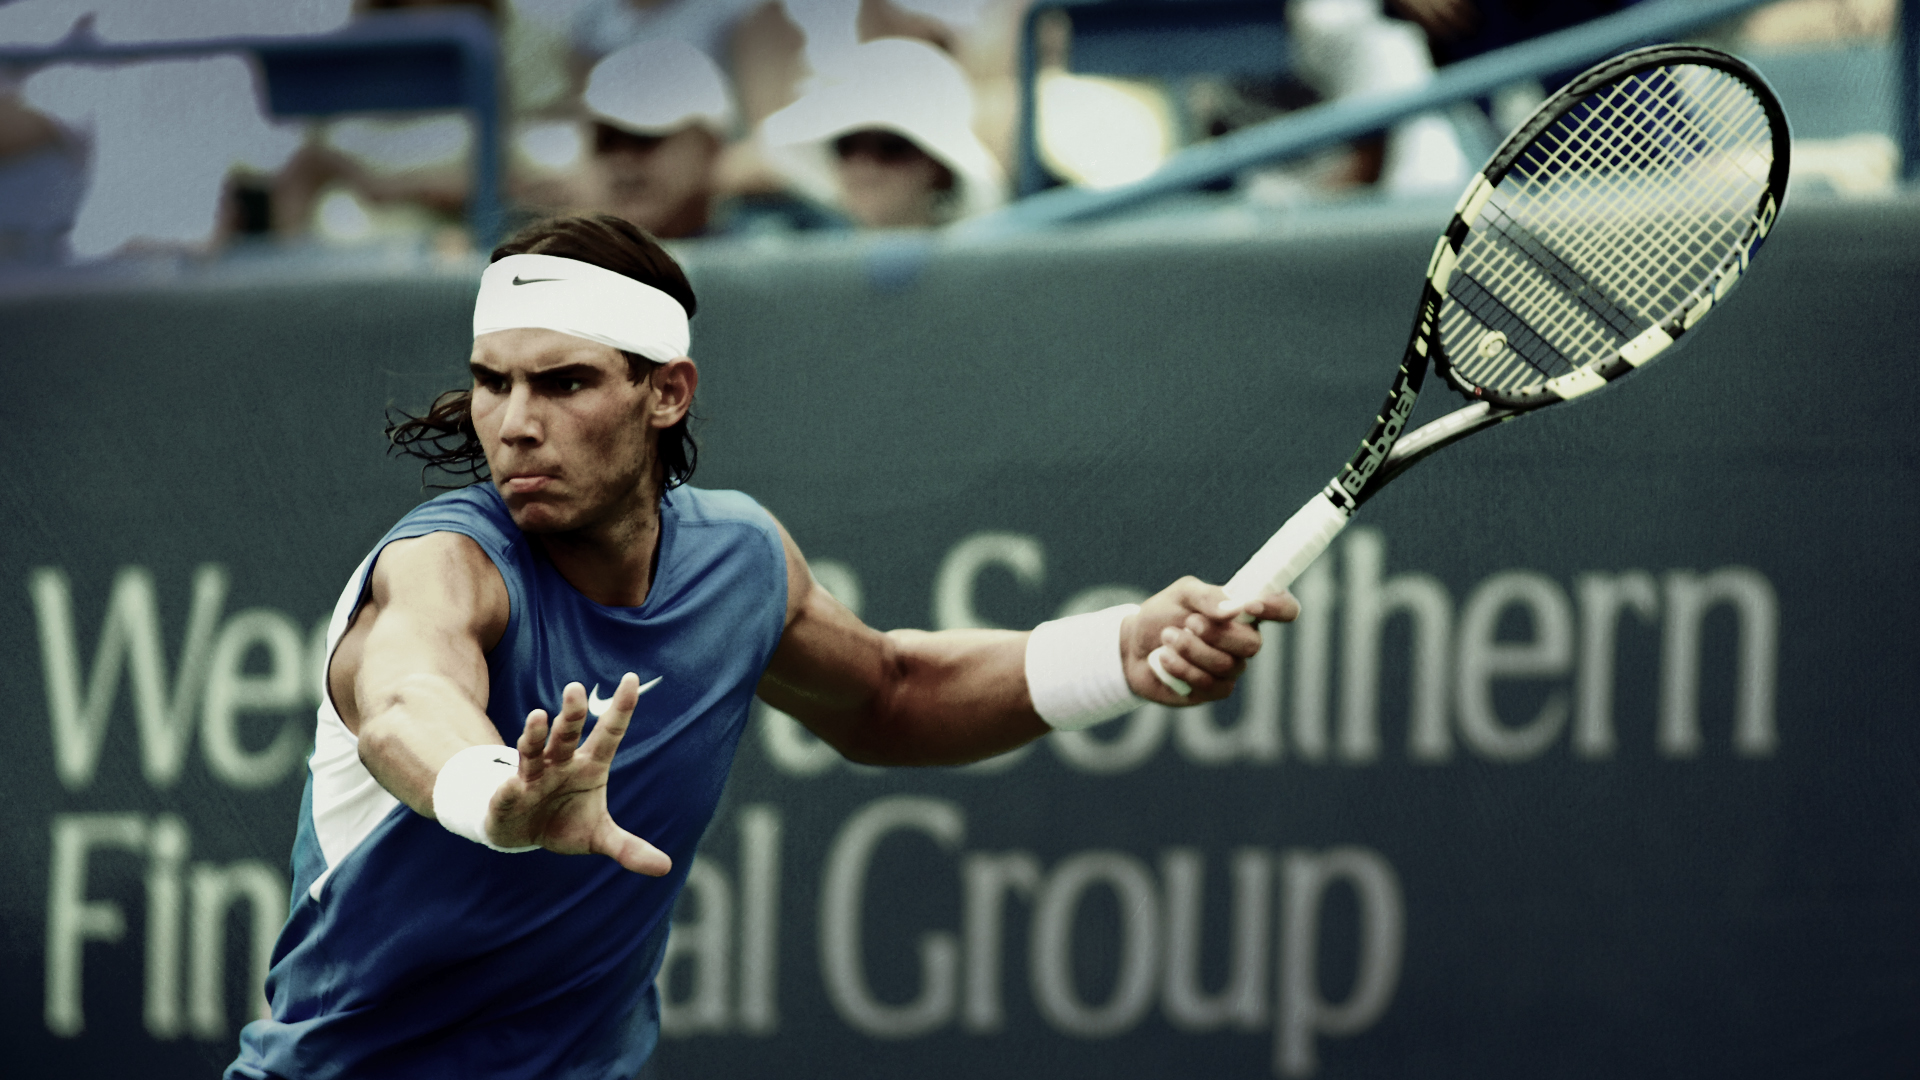 Rafael Nadal Hd Wallpaper Unbumf